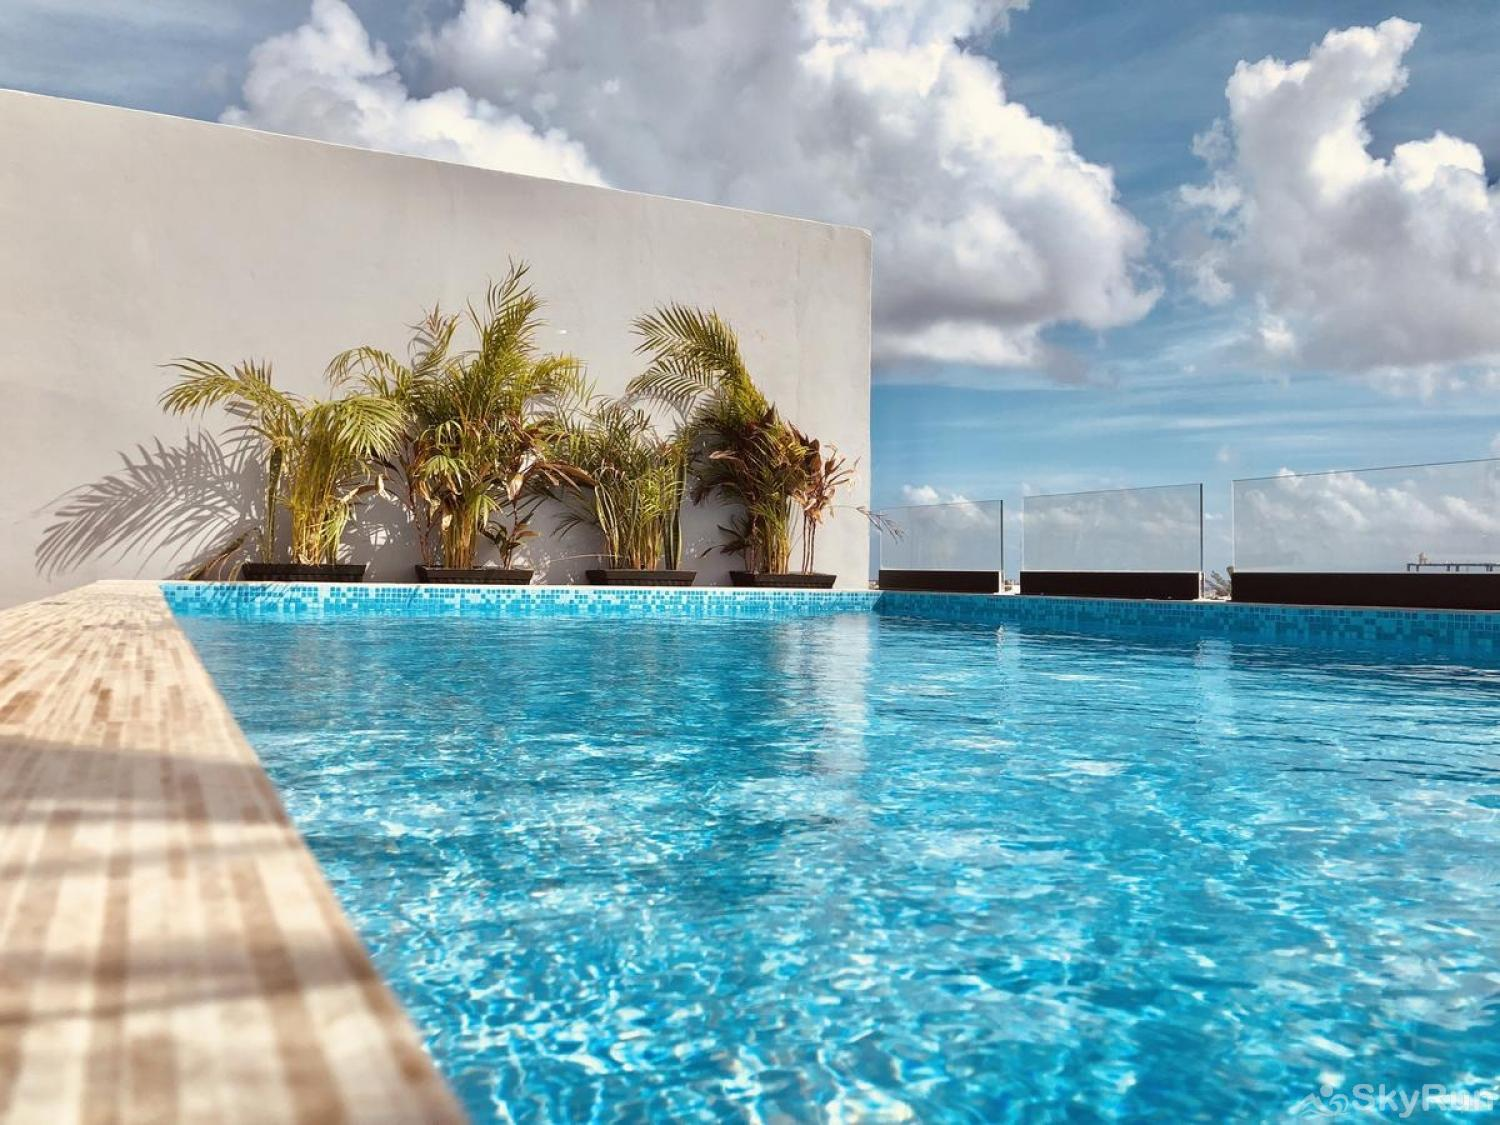 Awesome Condo-Loft style home in the heart of Playa del Carmen 303 SkyRun Luxury Condo Roof Outdoor Pool